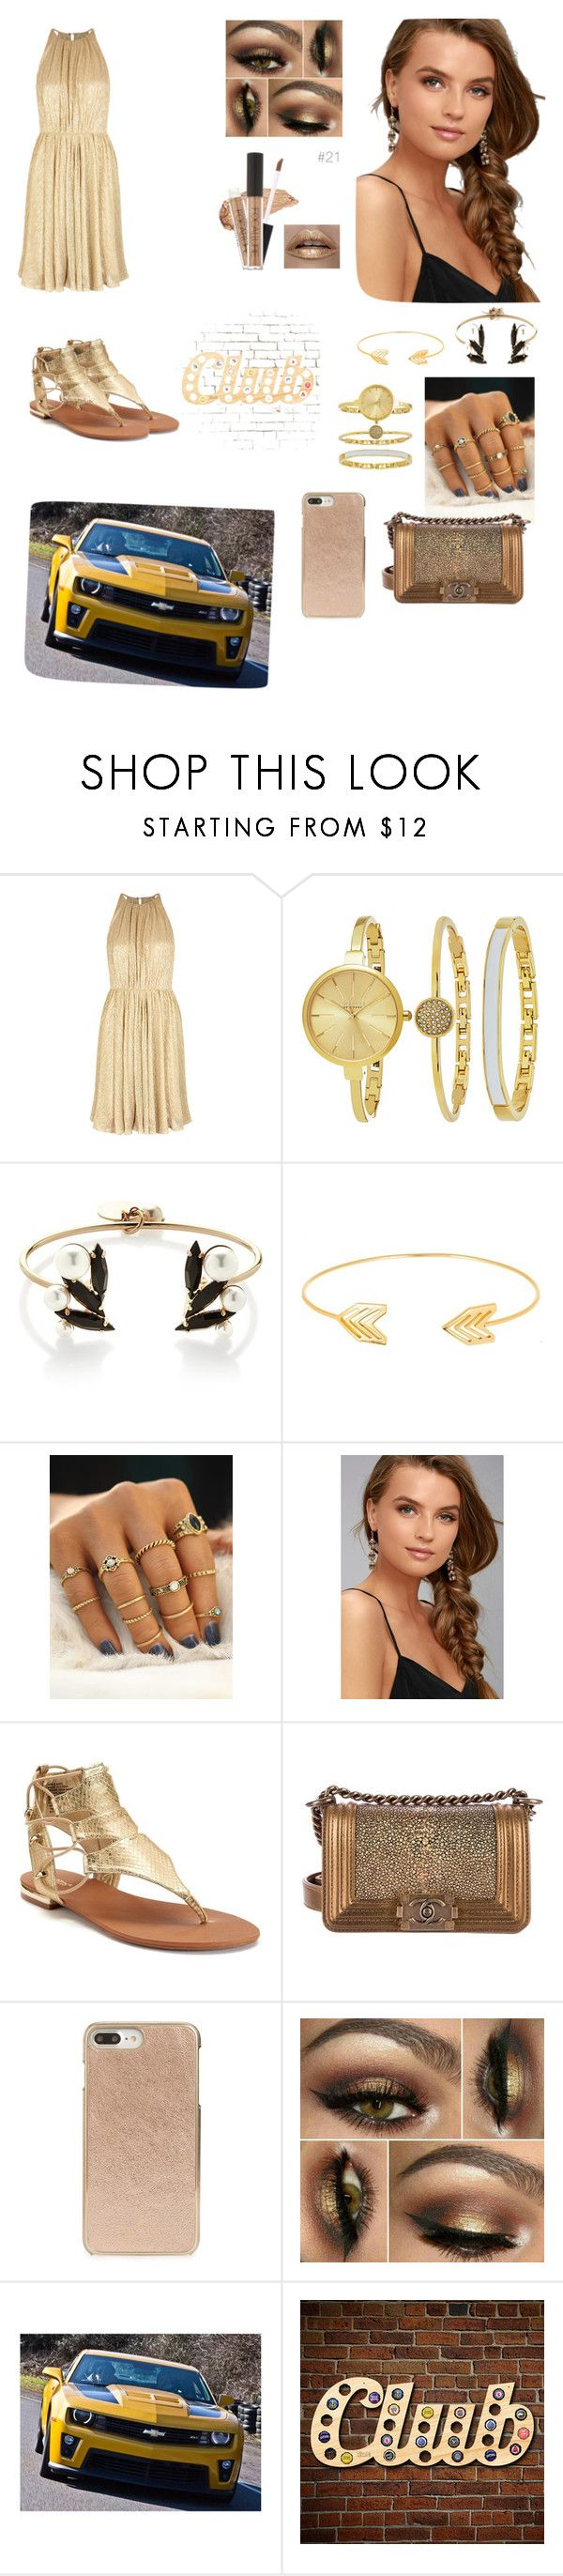 """""""Golden Time"""" by naomioliveira-1 ❤ liked on Polyvore featuring Halston Heritage, SO & CO, Anton Heunis, Lord & Taylor, LULUS, Apt. 9, Chanel and Kate Spade"""